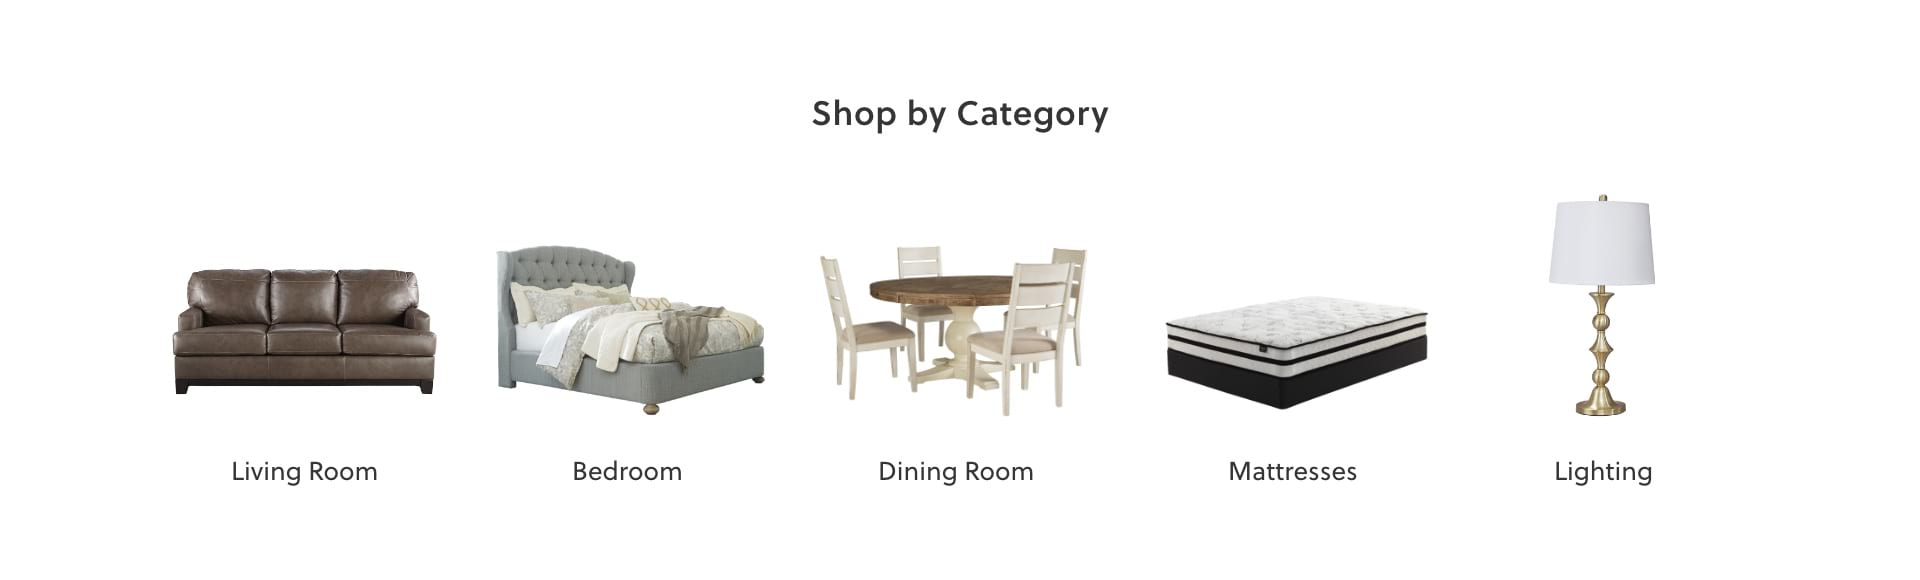 Living Room, Bedroom, Dining Room, Mattresses, Lighting